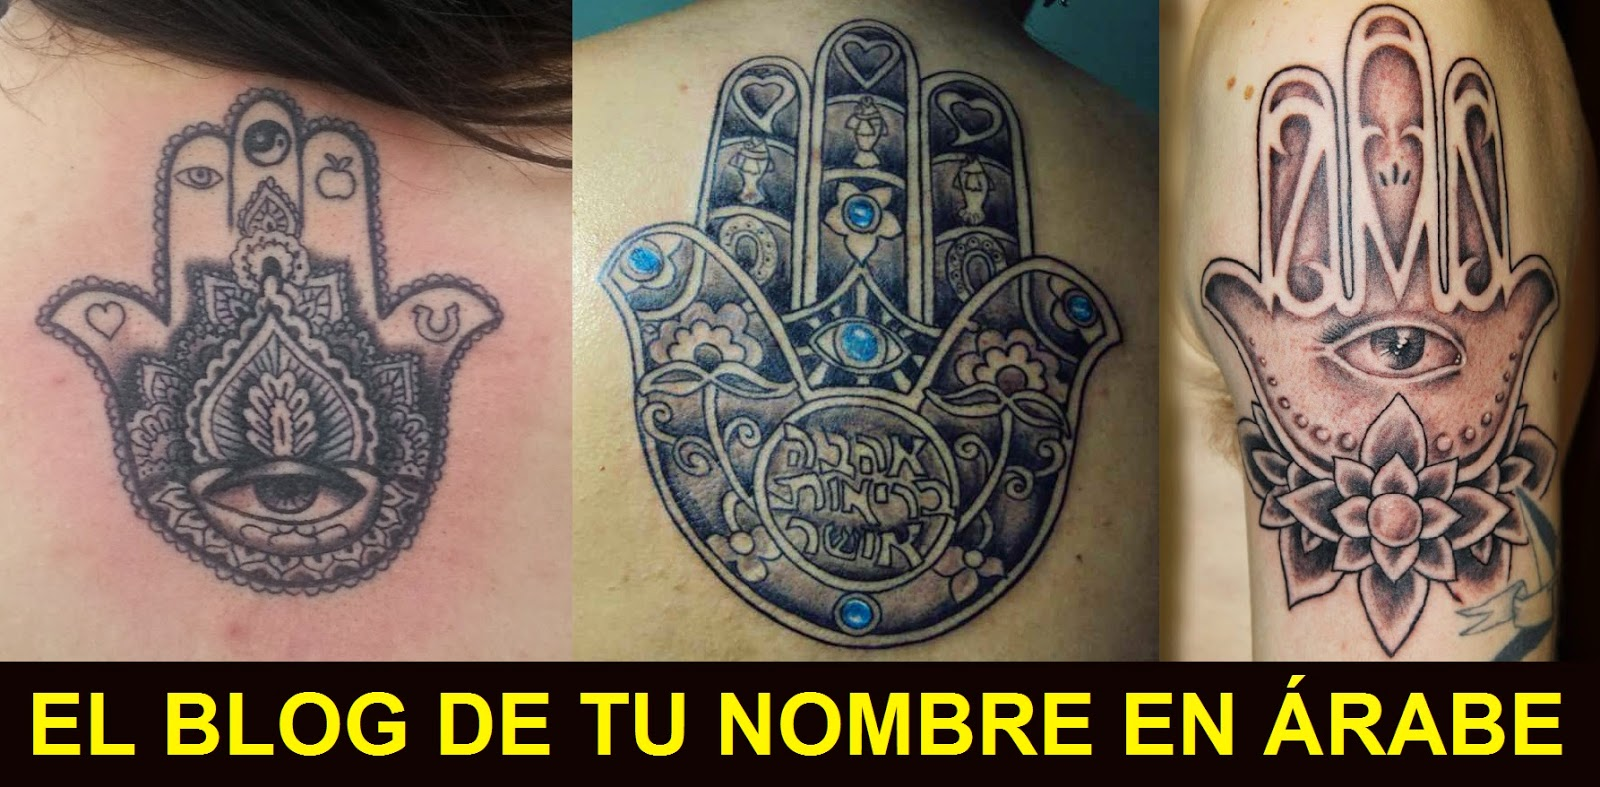 LA MANO DE FATIMATATTOOS